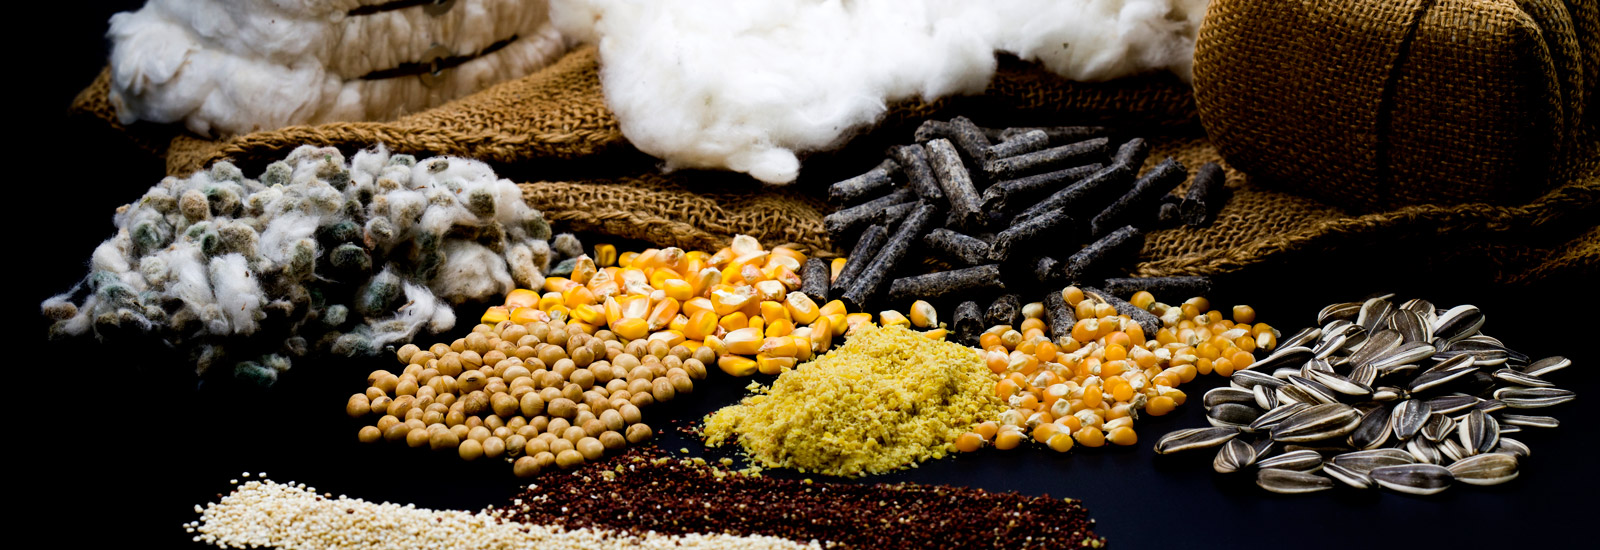 Algosur - Production and Industrialization of Agroindustrial Products